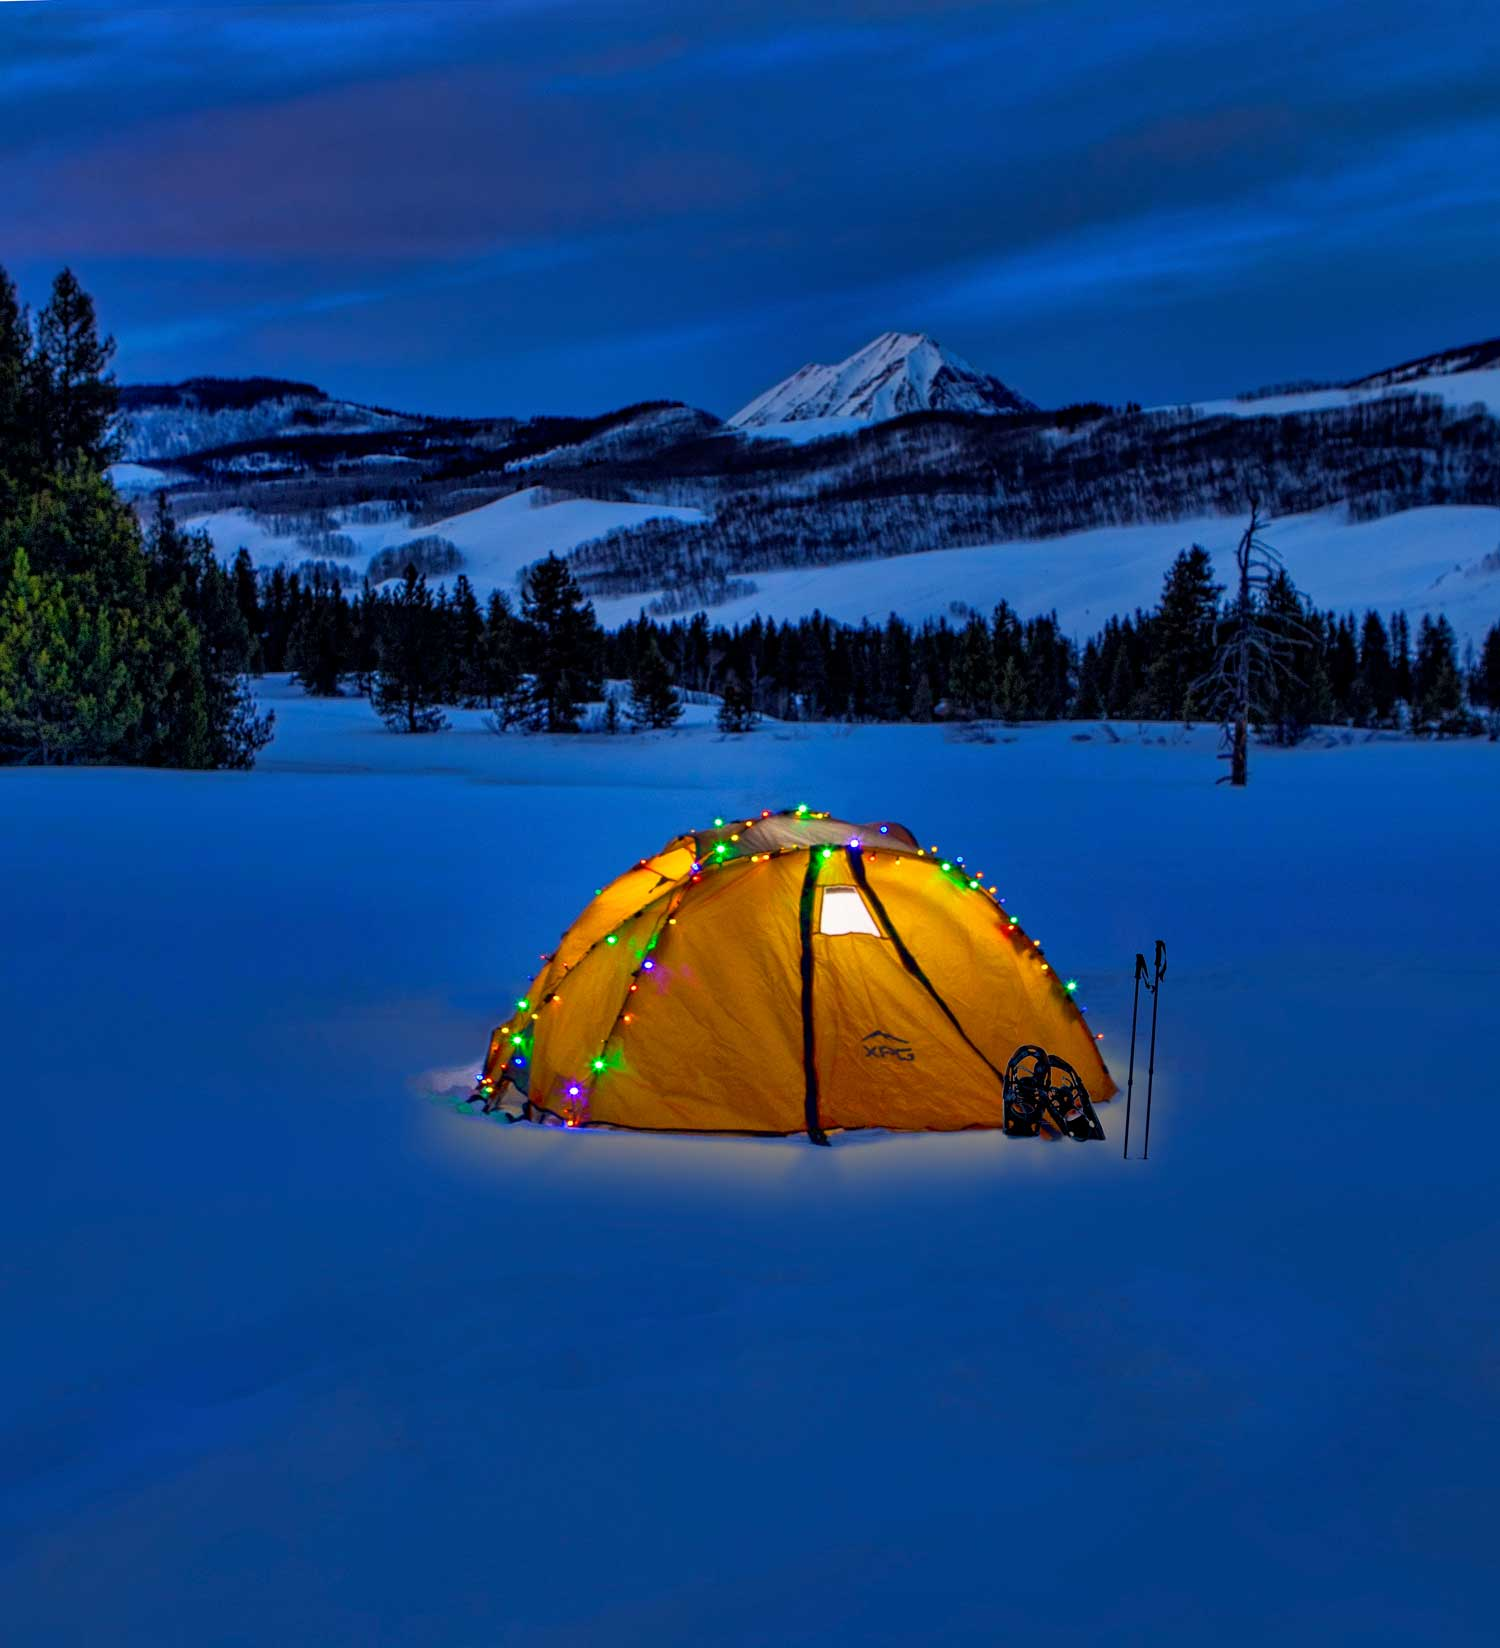 tent with lit up christmas lights on snowy mountain landscape